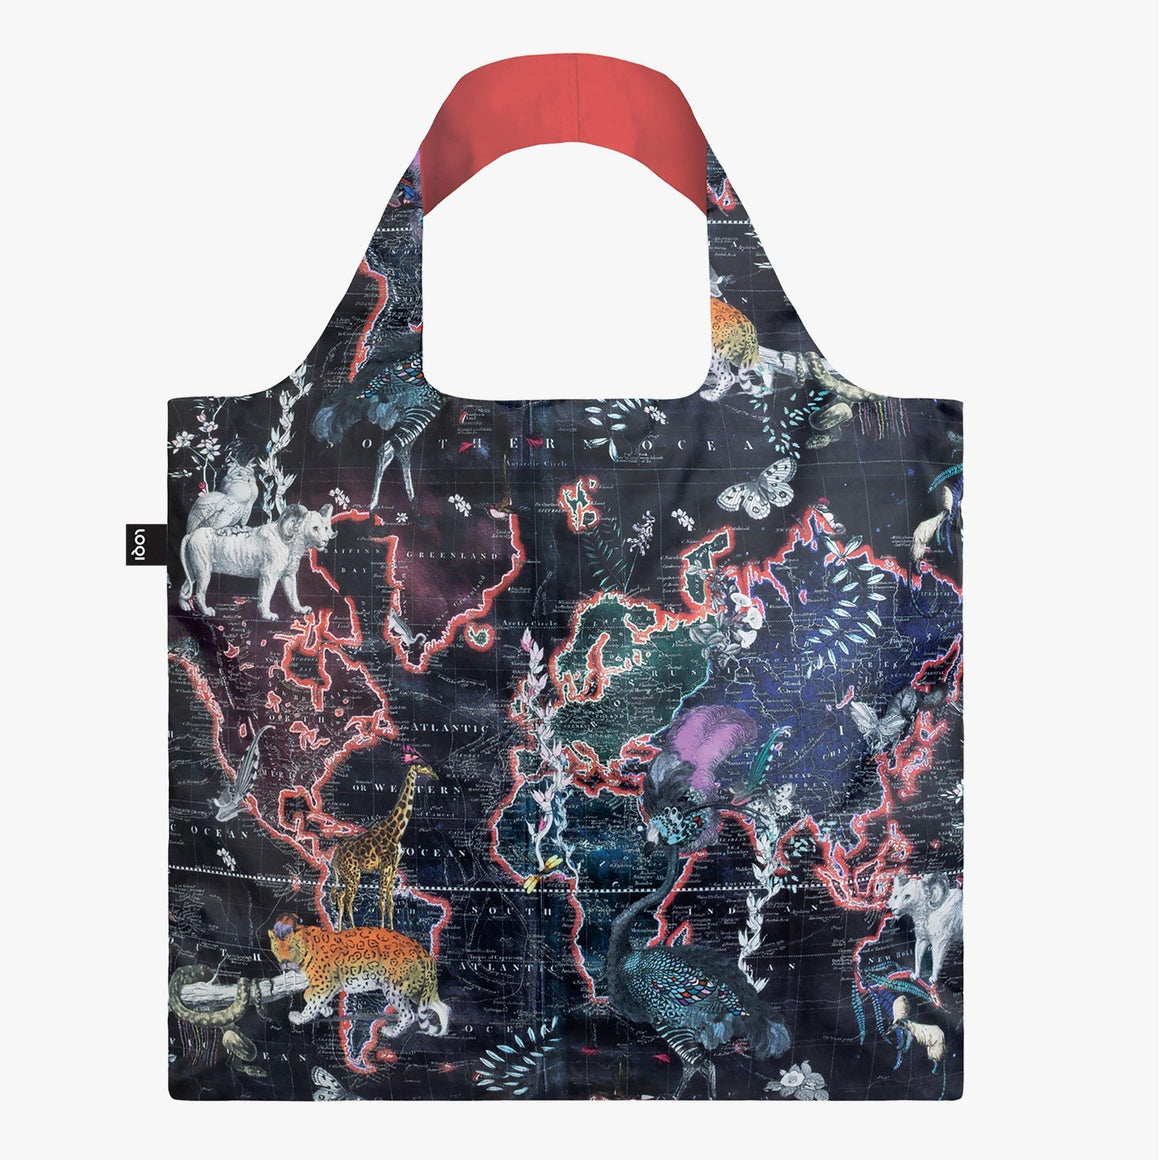 Tote Bag - KRISTJANA S WILLIAMS INTERIORS Map